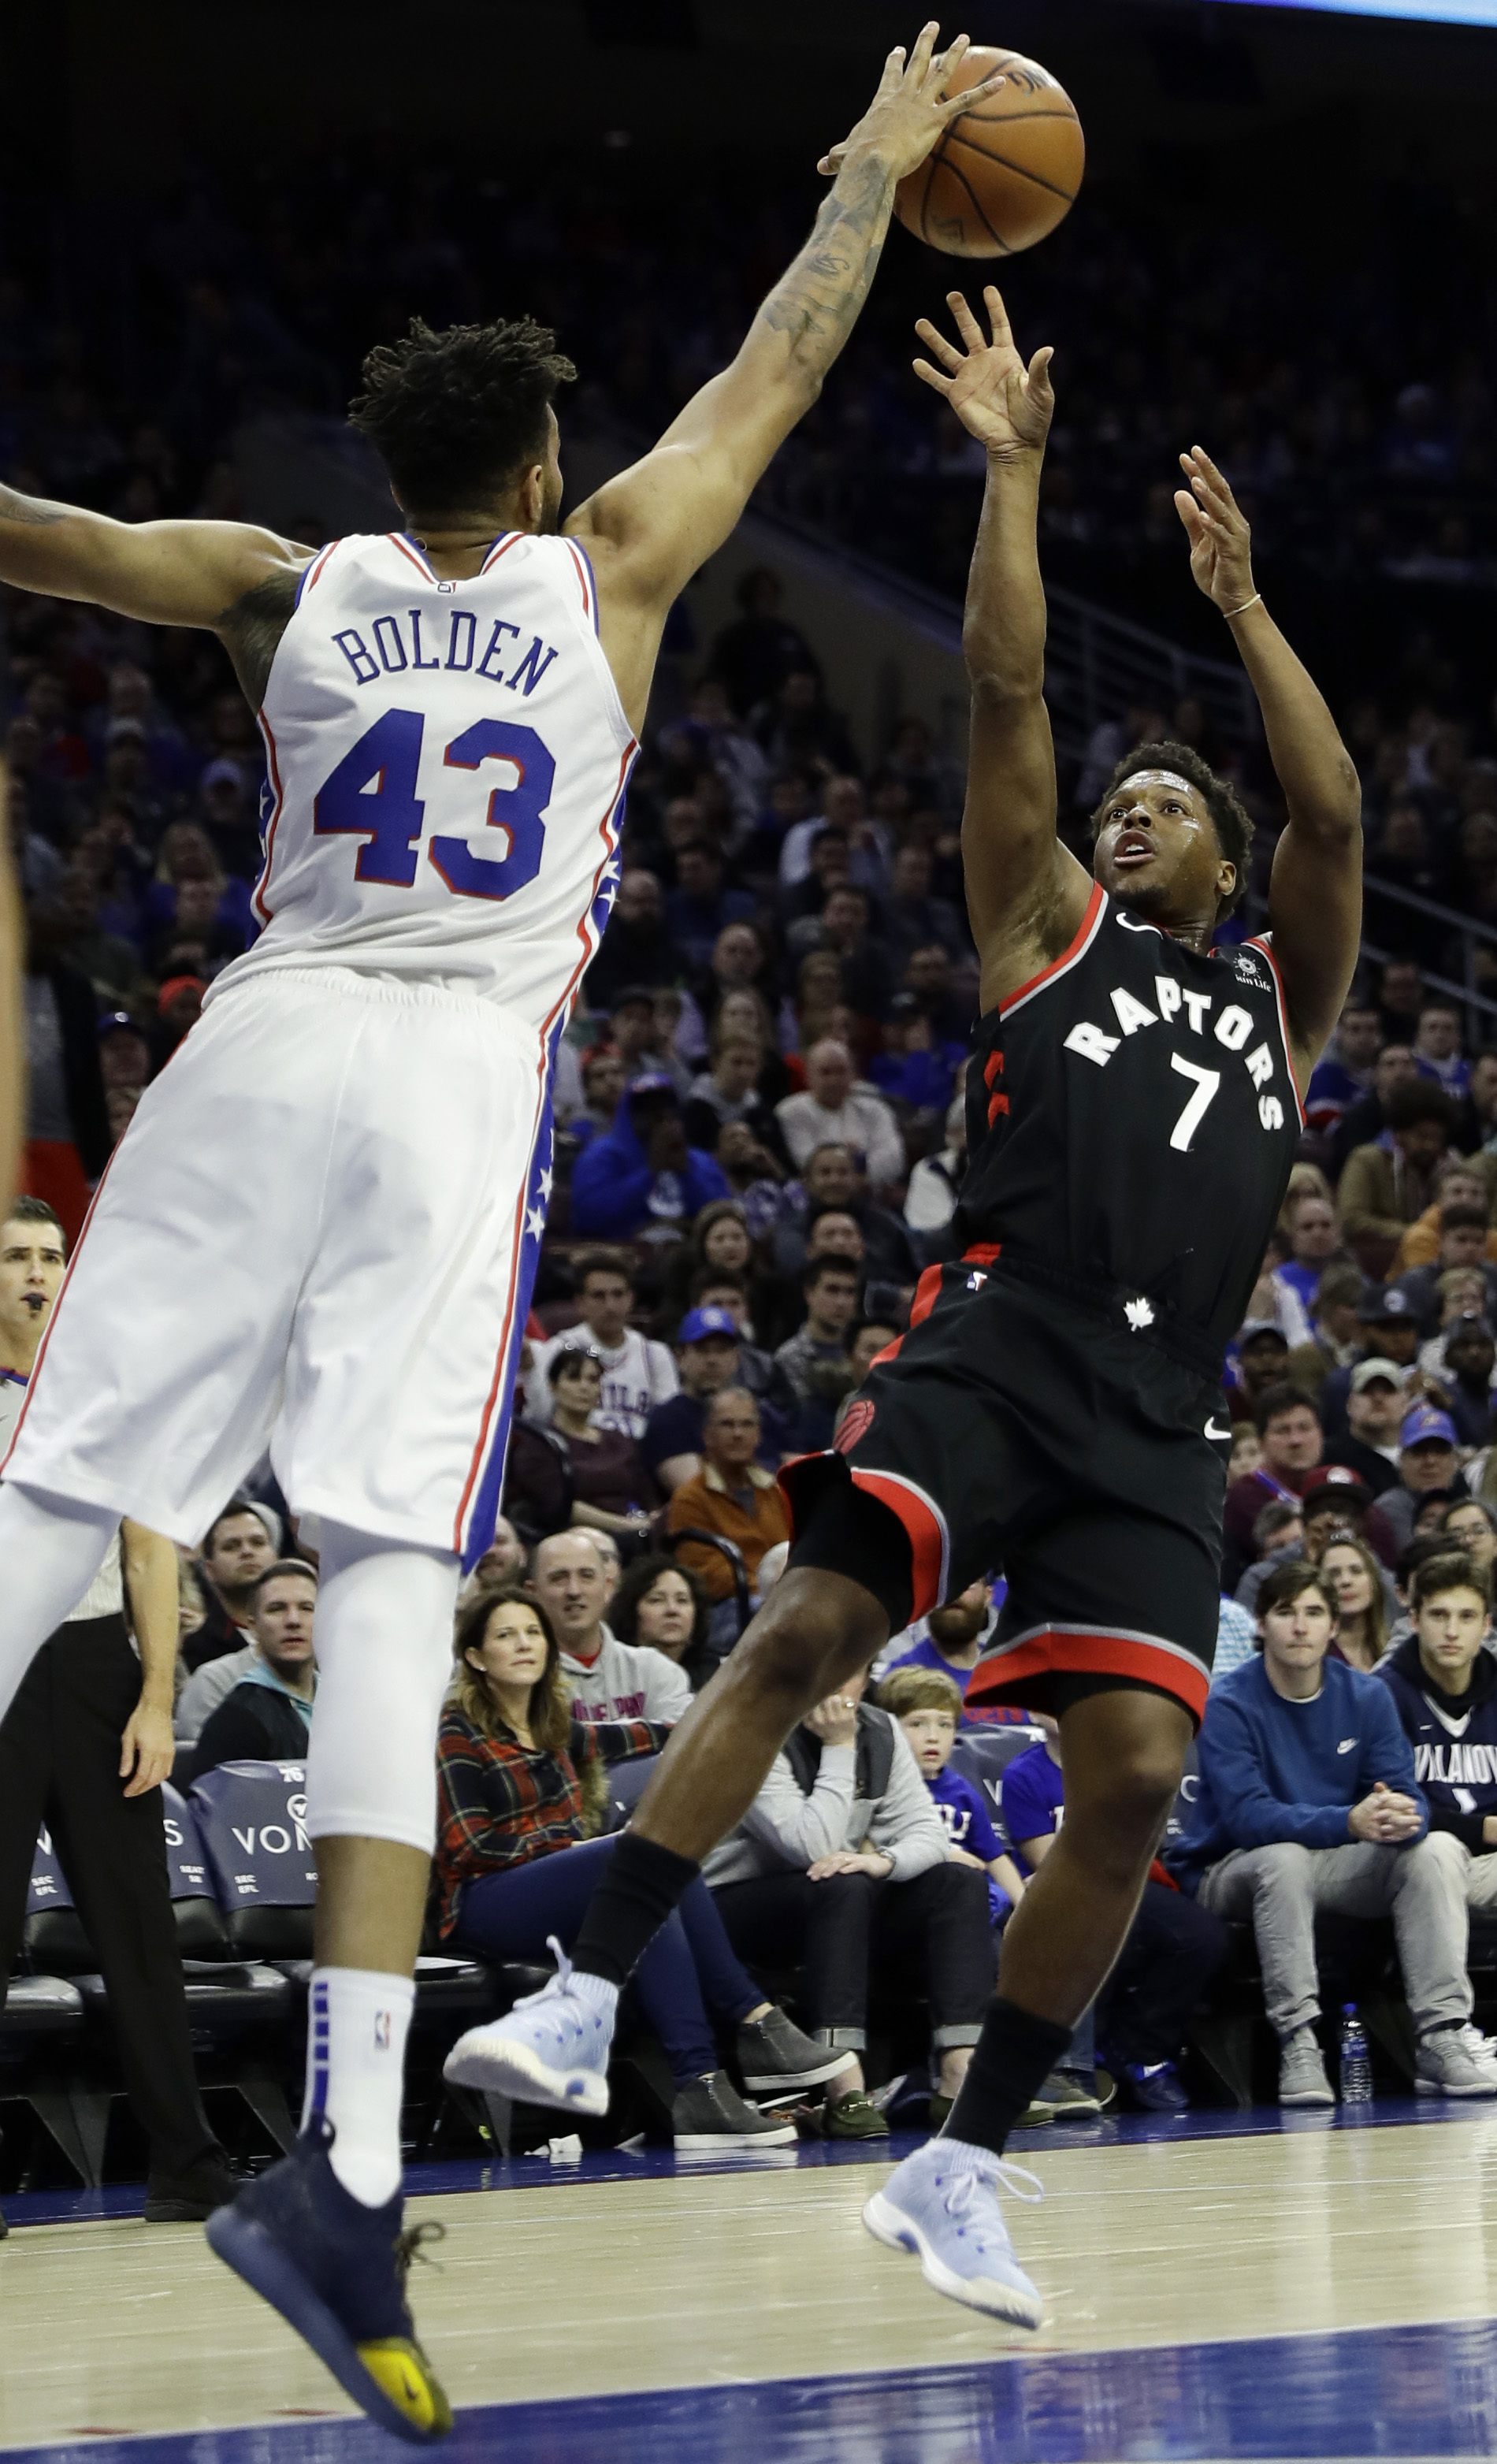 Toronto Raptors' Kyle Lowry, right, cannot get a shot past Philadelphia 76ers' Jonah Bolden during the first half of an NBA basketball game, Saturday, Dec. 22, 2018, in Philadelphia. (AP Photo/Matt Slocum)